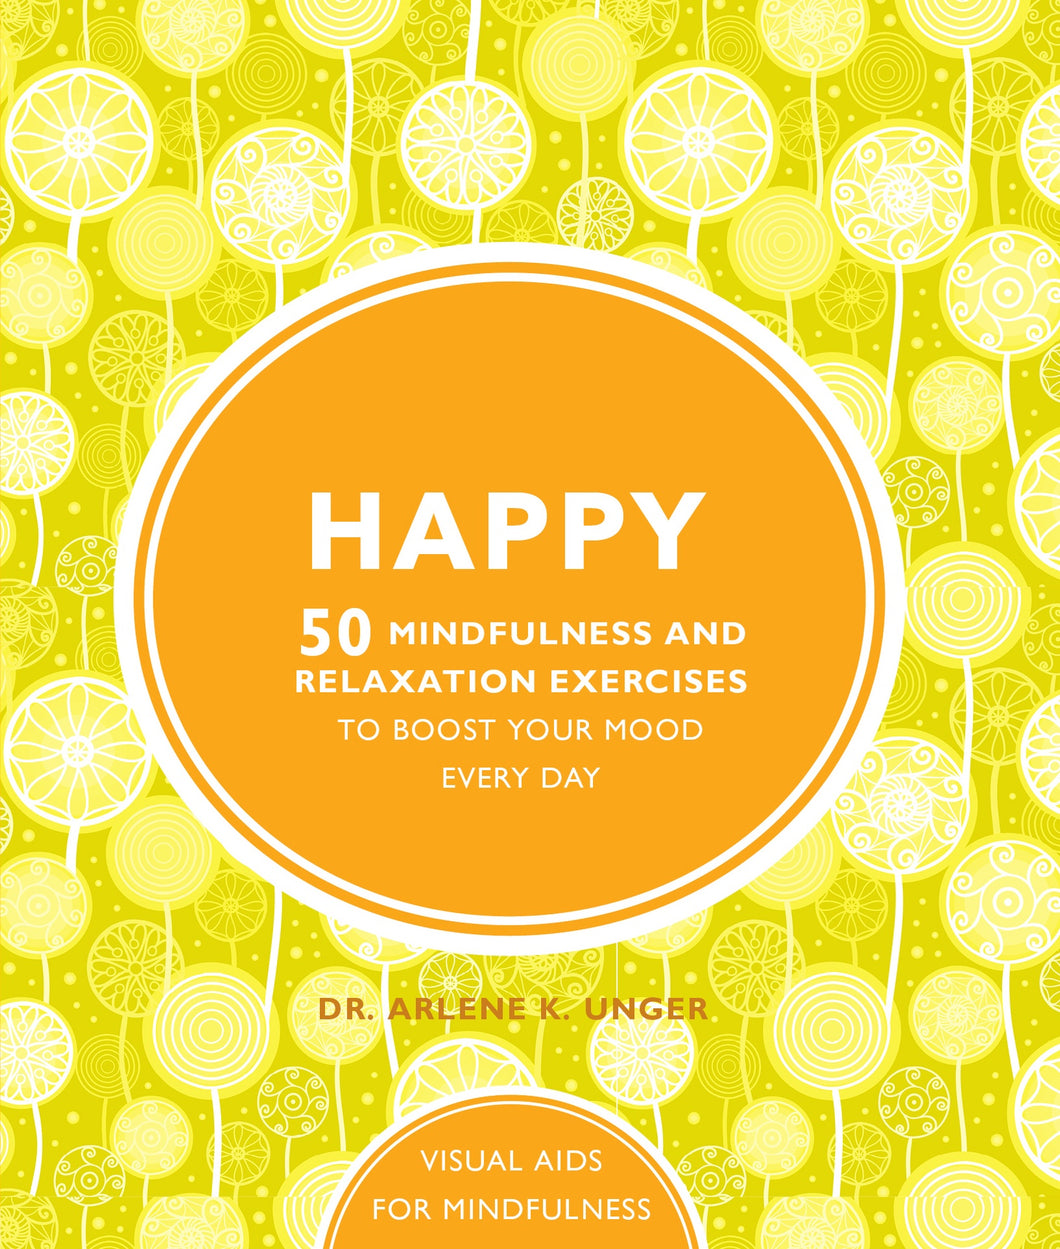 Happy : 50 Mindfulness and Relaxation Exercises to Boost Your Mood Every Day (Book by Dr. Arlene K. Unger) - Books - Spiffy